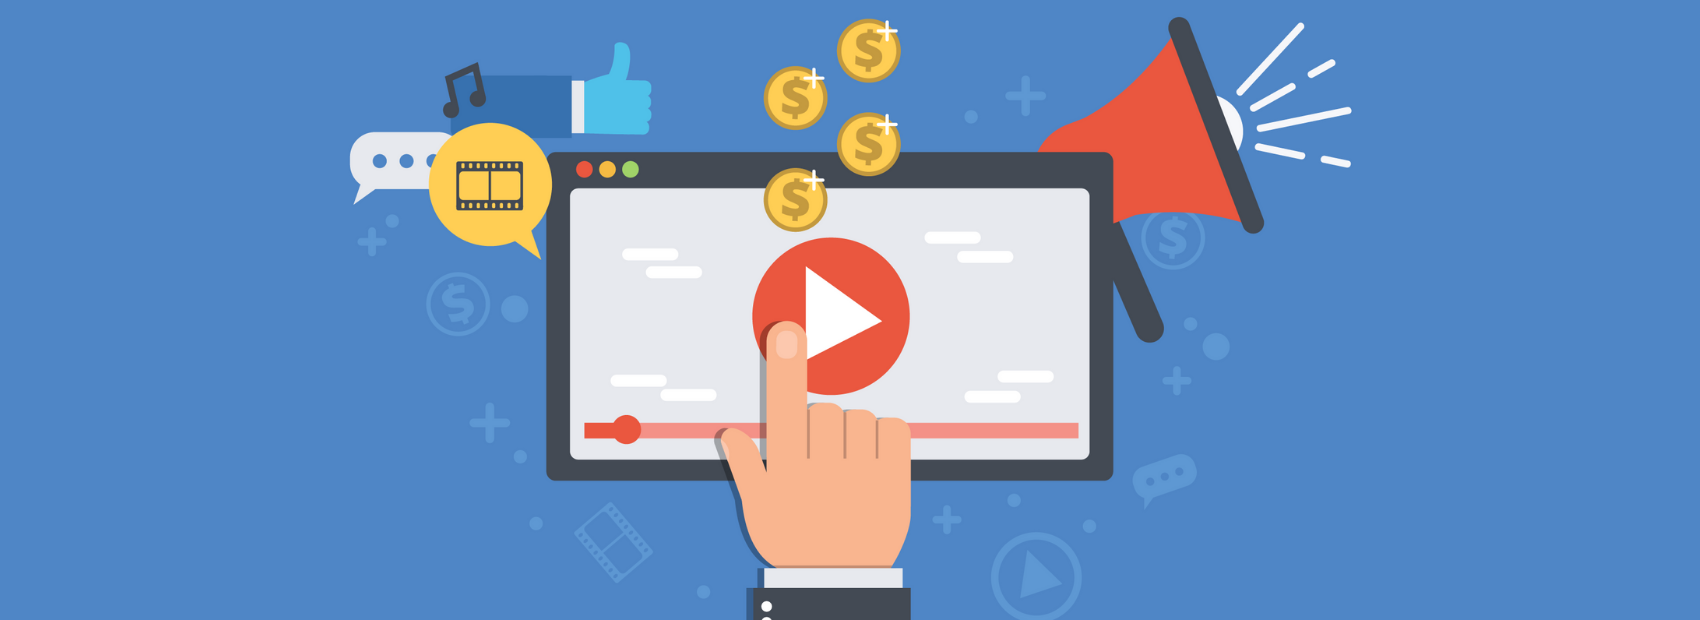 8 motivi per cui dovresti affidarti al video marketing